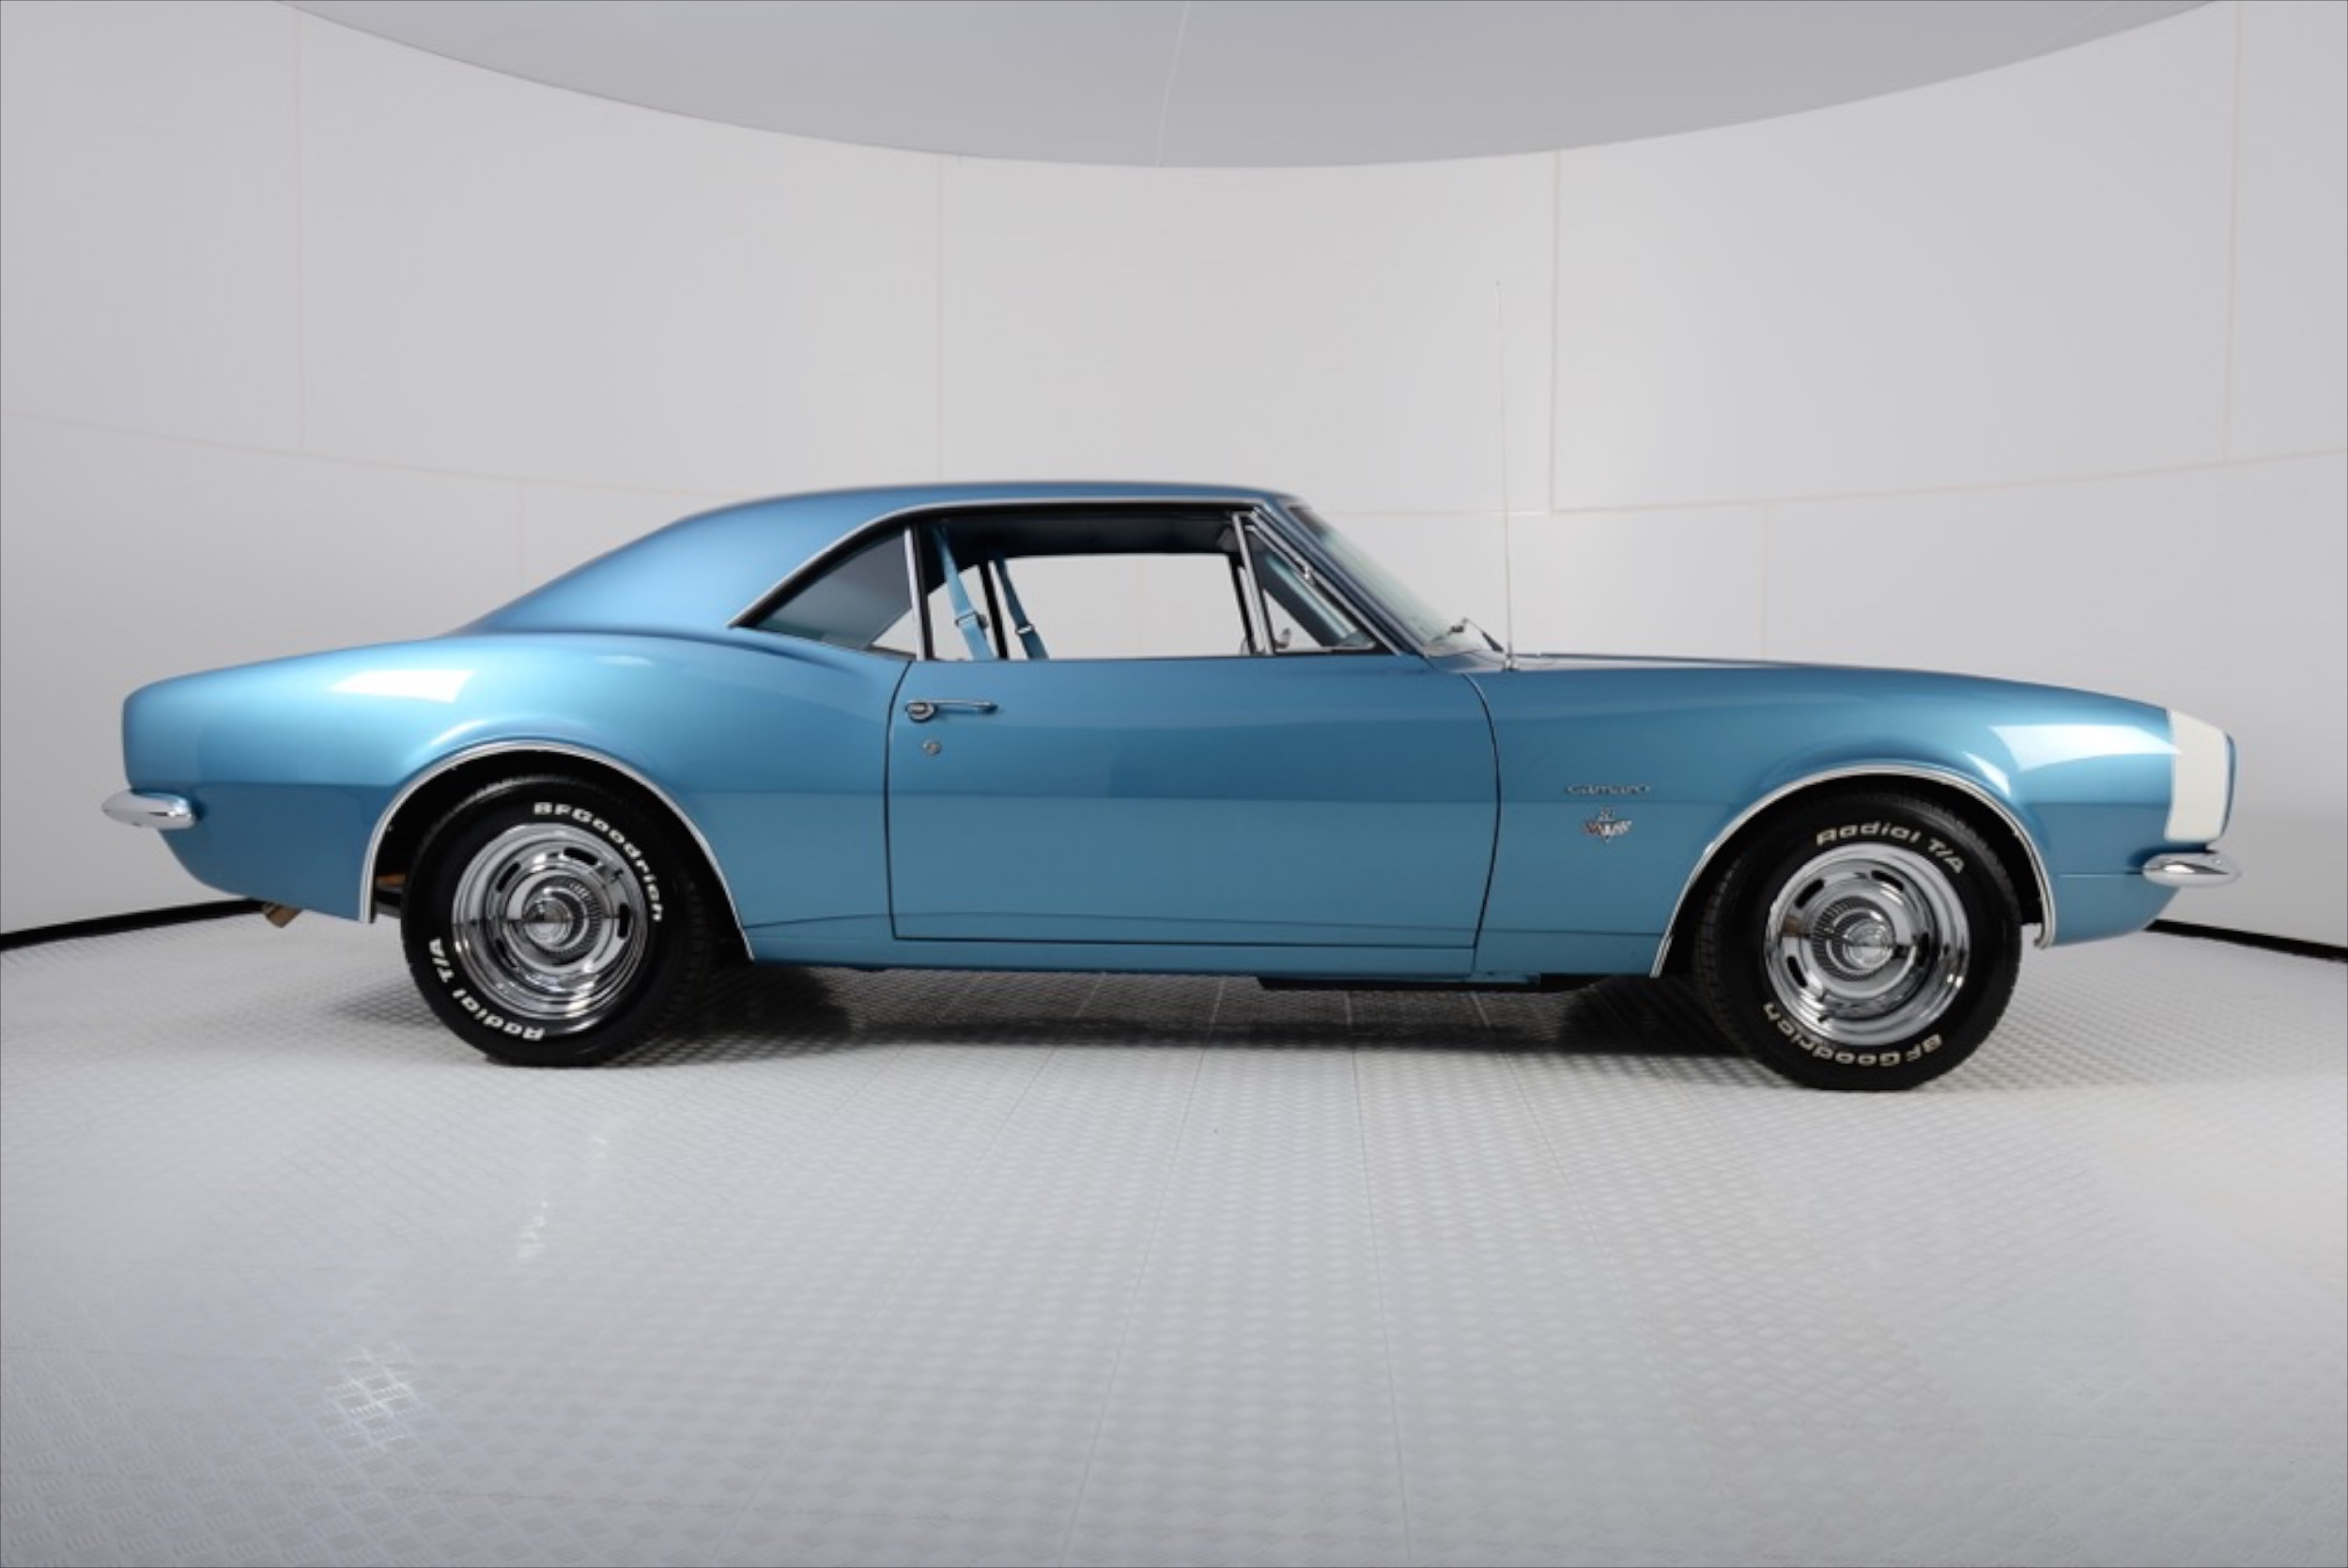 1967 Camaro restored by Classic Cars of Houston